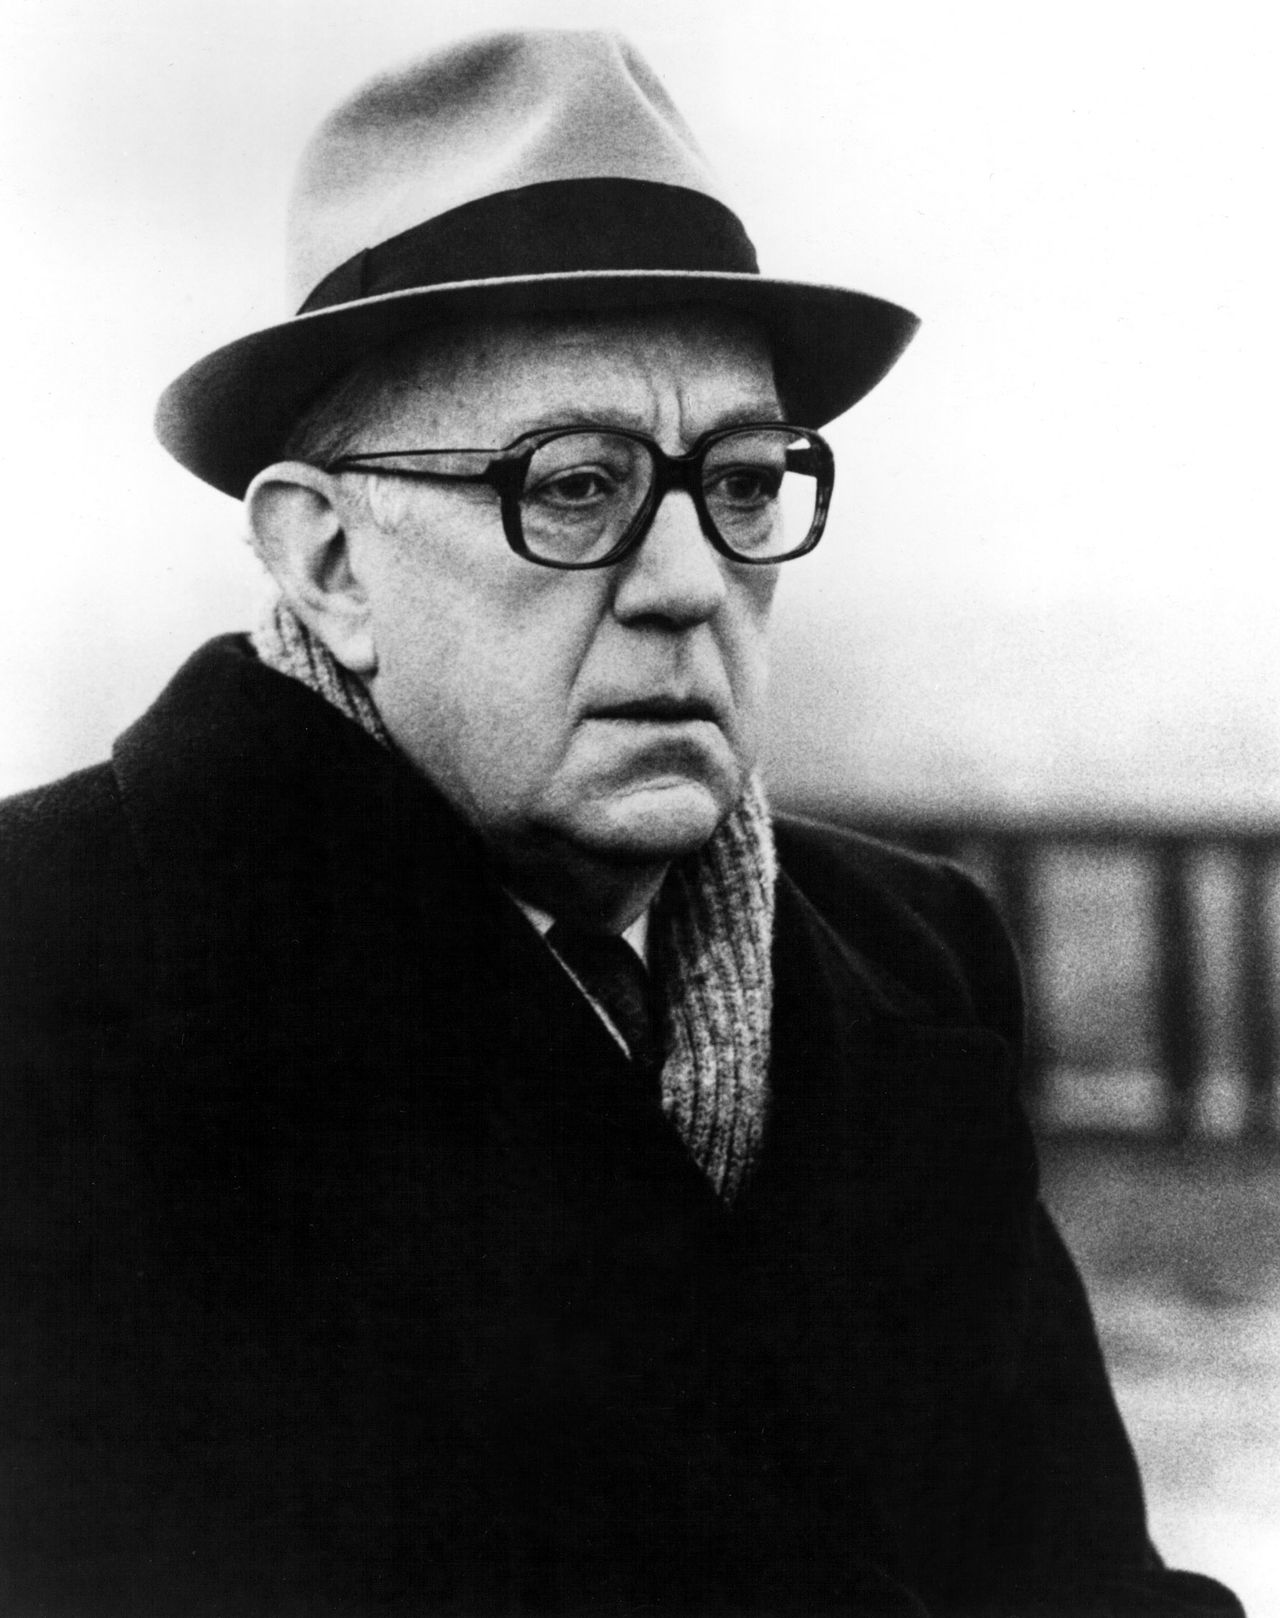 TINKER, TAILOR, SOLDIER, SPY, Alec Guinness (Great Performances), 1979